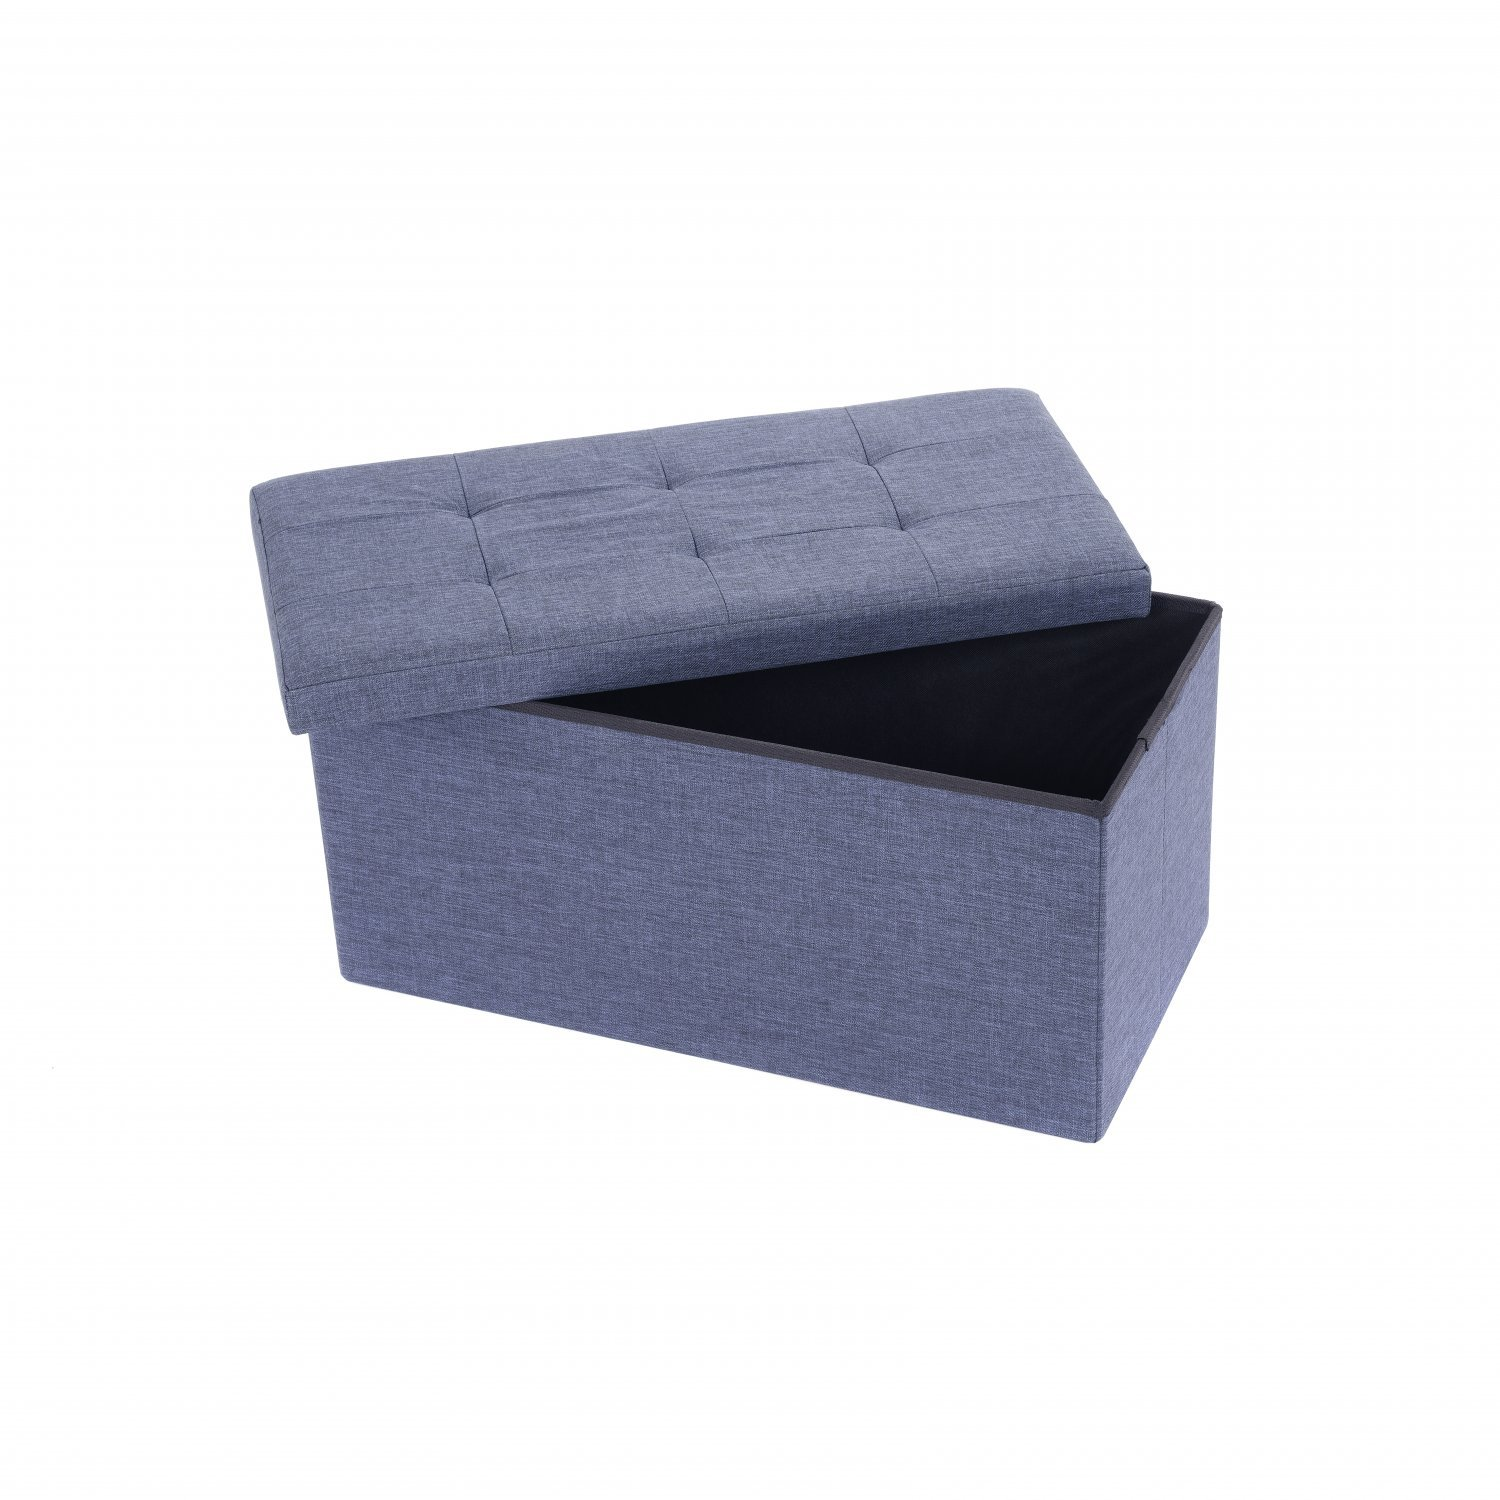 Kids Collapsible Ottoman Toy Books Box Storage Seat Chest: Medium Blue Linen Folding Ottoman Storage Chest Box Seat